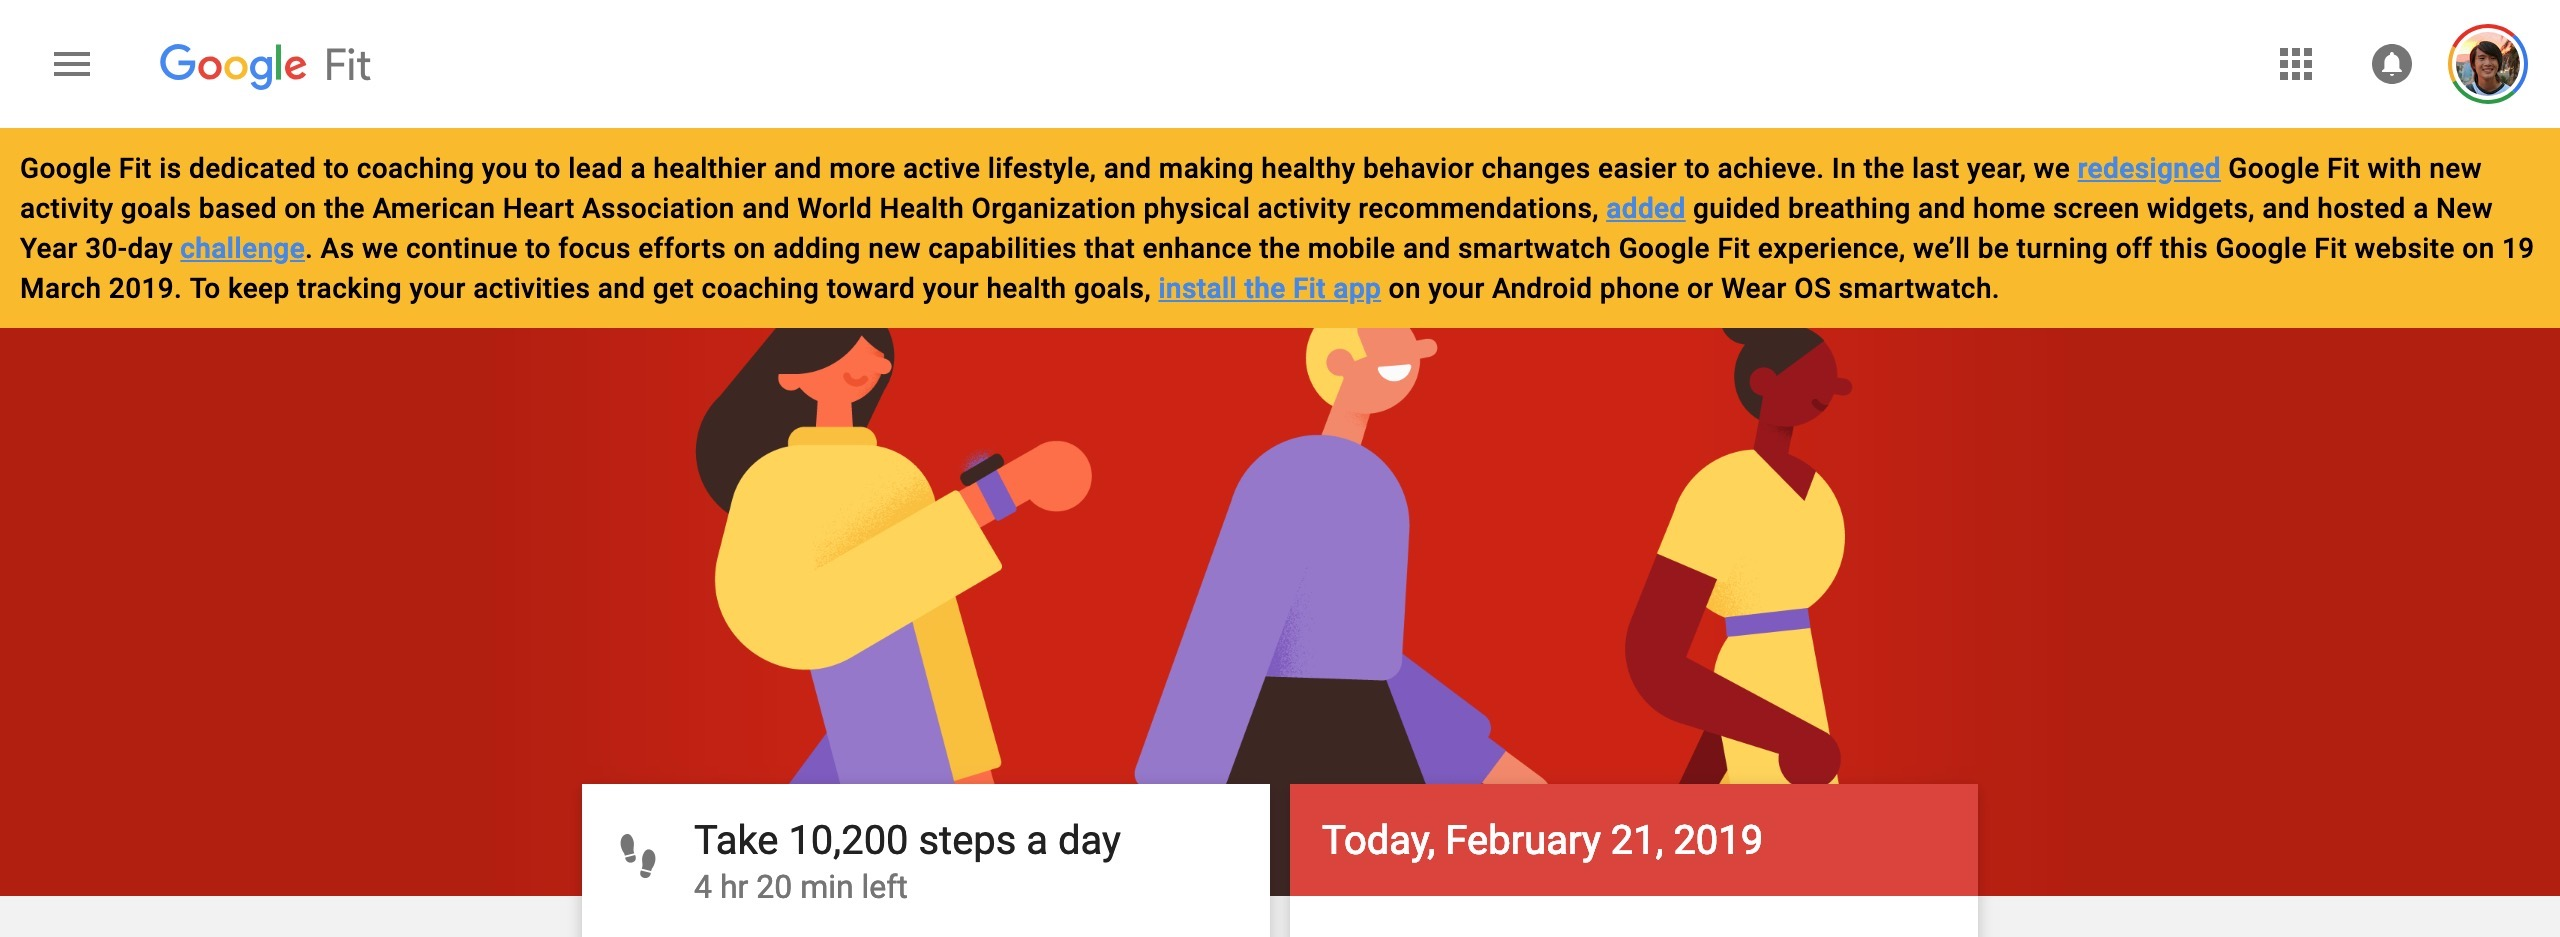 Google shutting down Google Fit on the web, focussing on Android and Wear OS